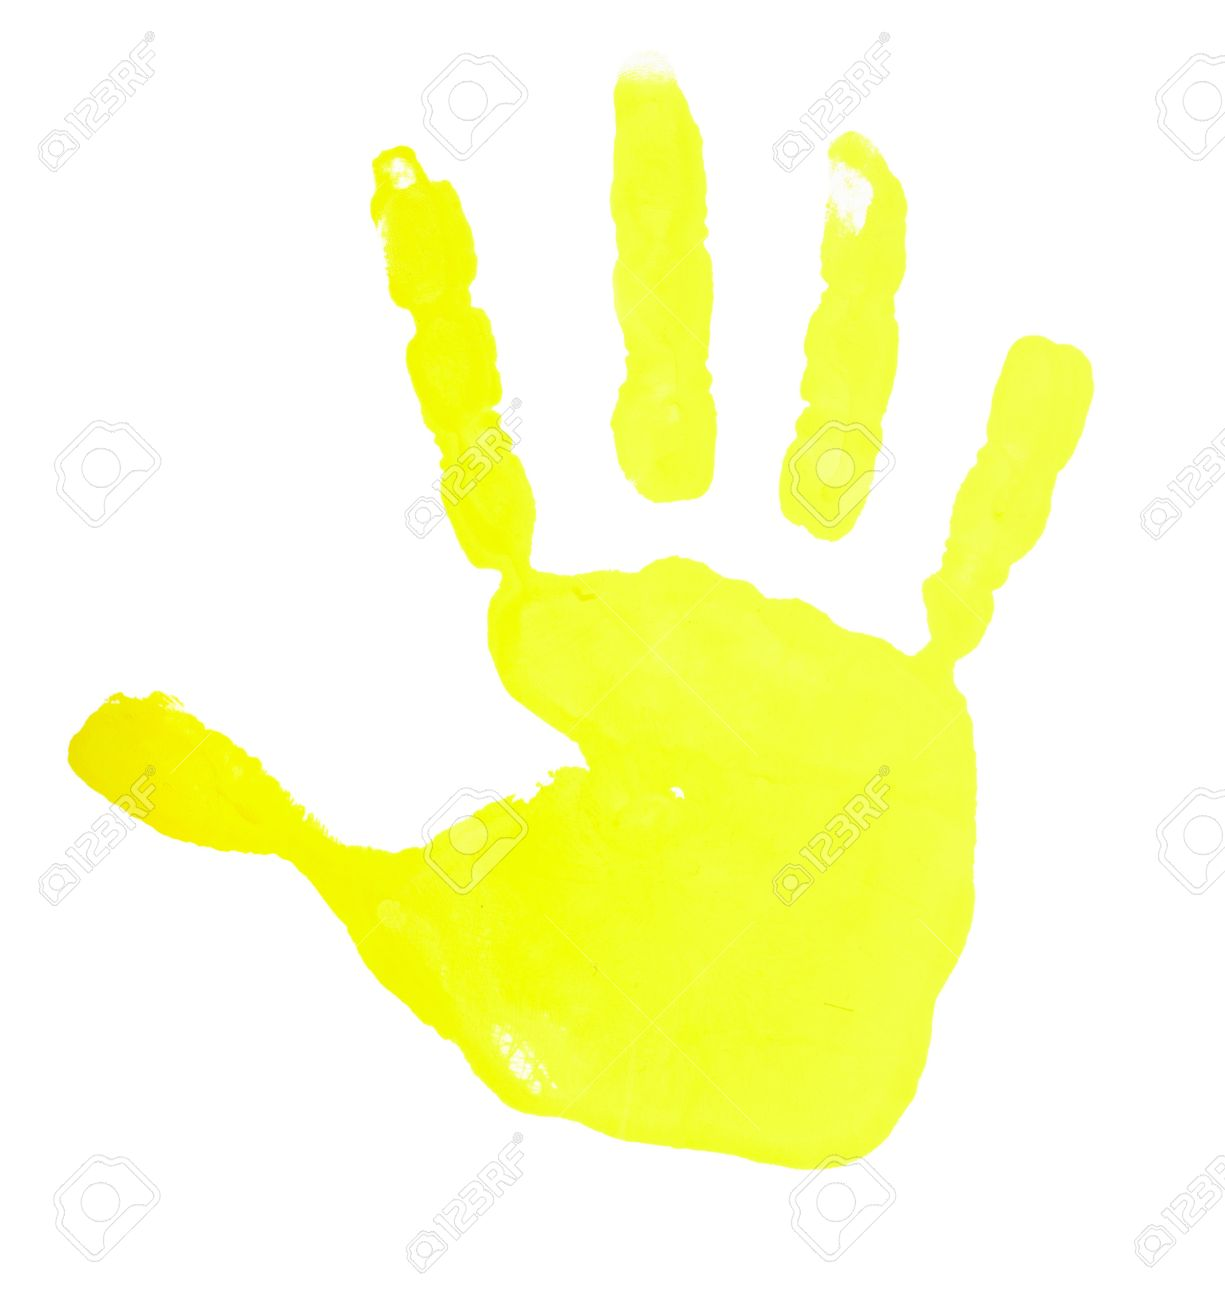 close up of colored hand print on white background Stock Photo - 7068594